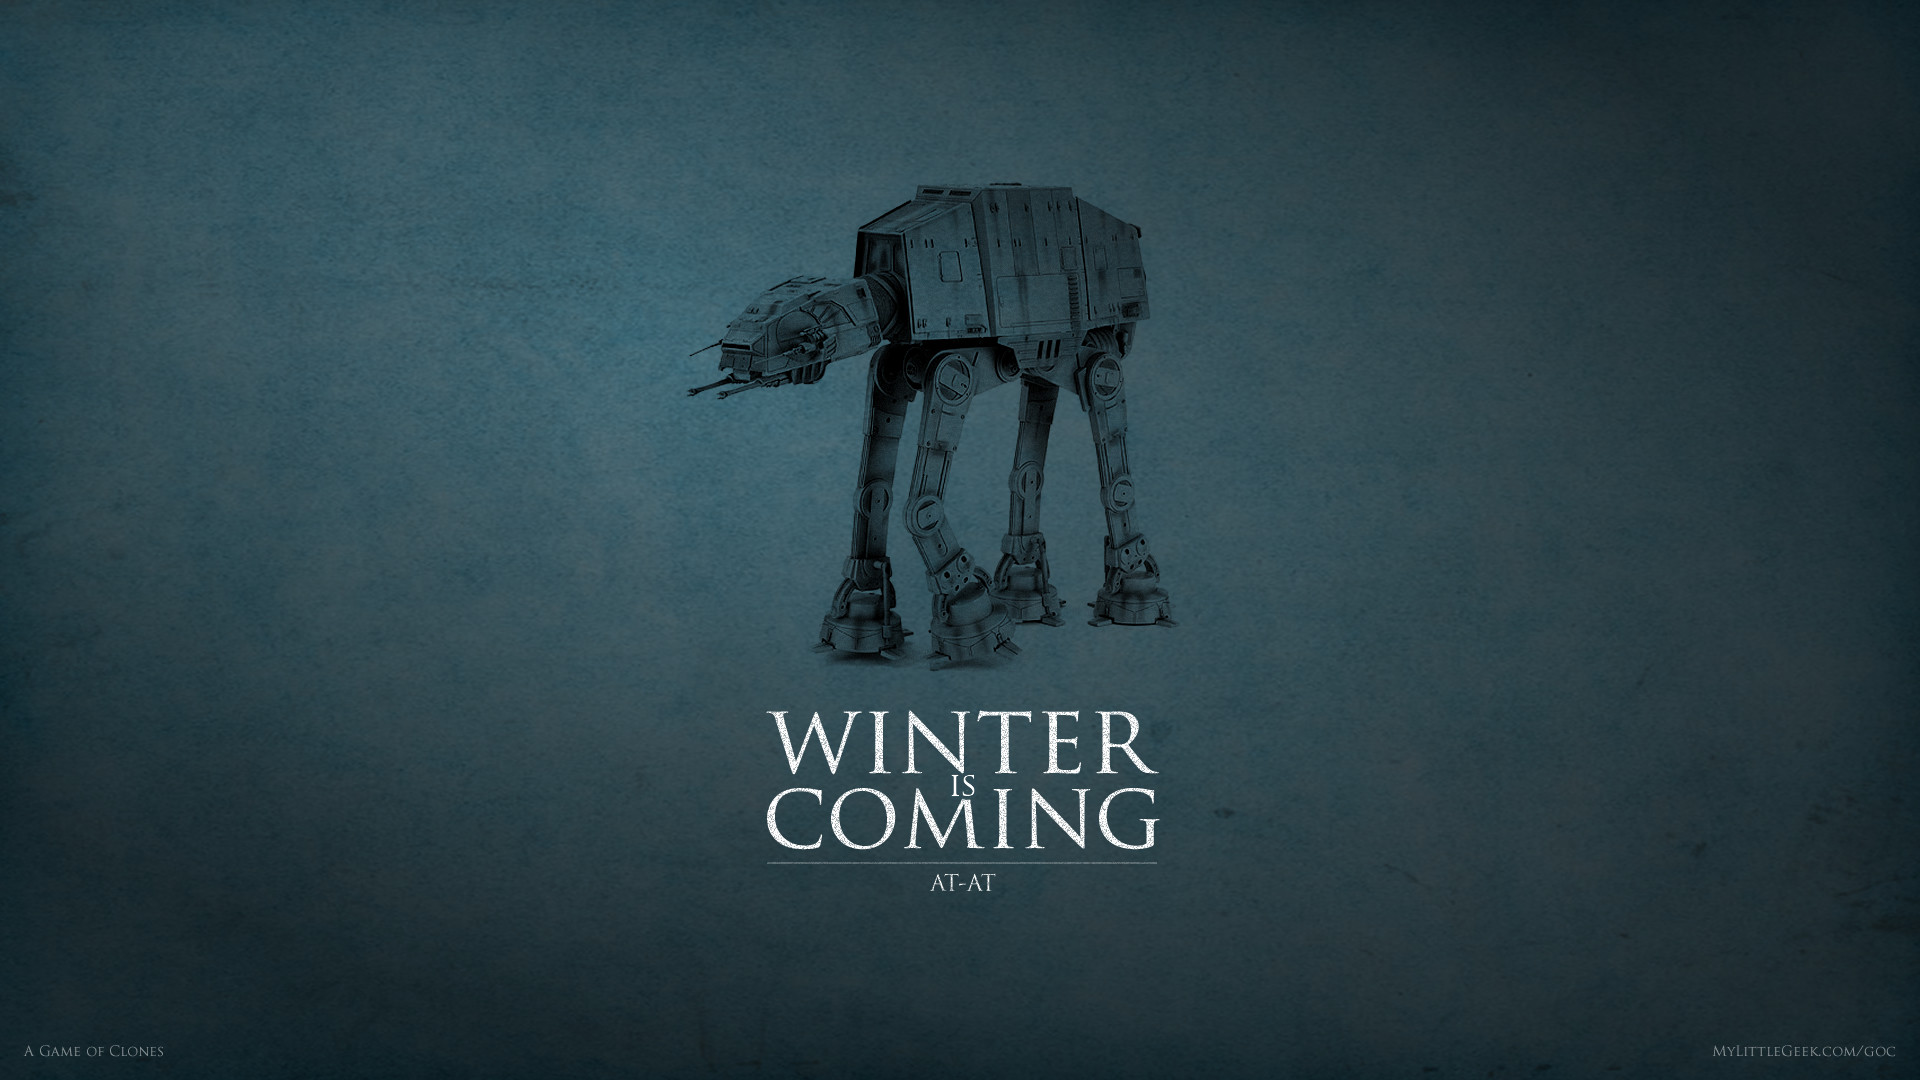 game of clones star wars game of thrones mashup wallpapers